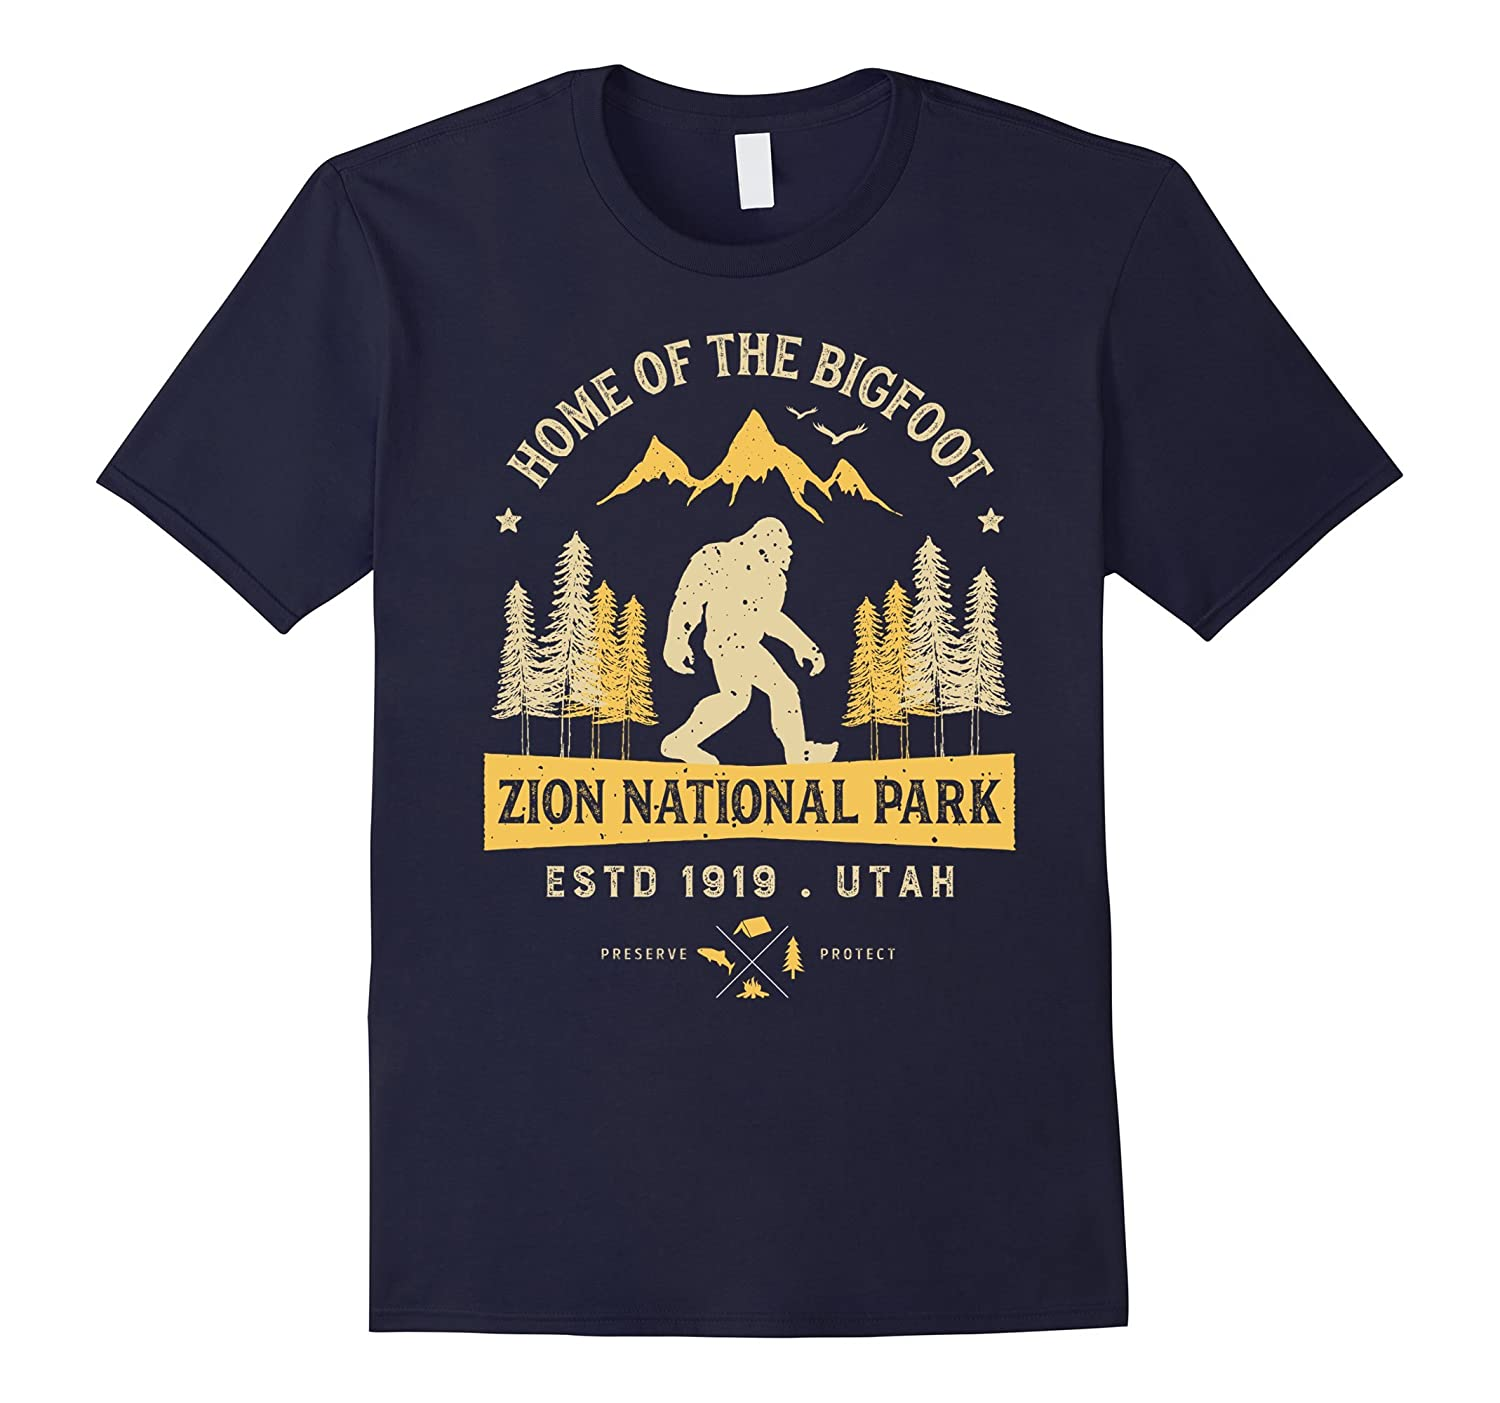 Zion National Park Vintage Bigfoot Utah T Shirt Men Women-RT